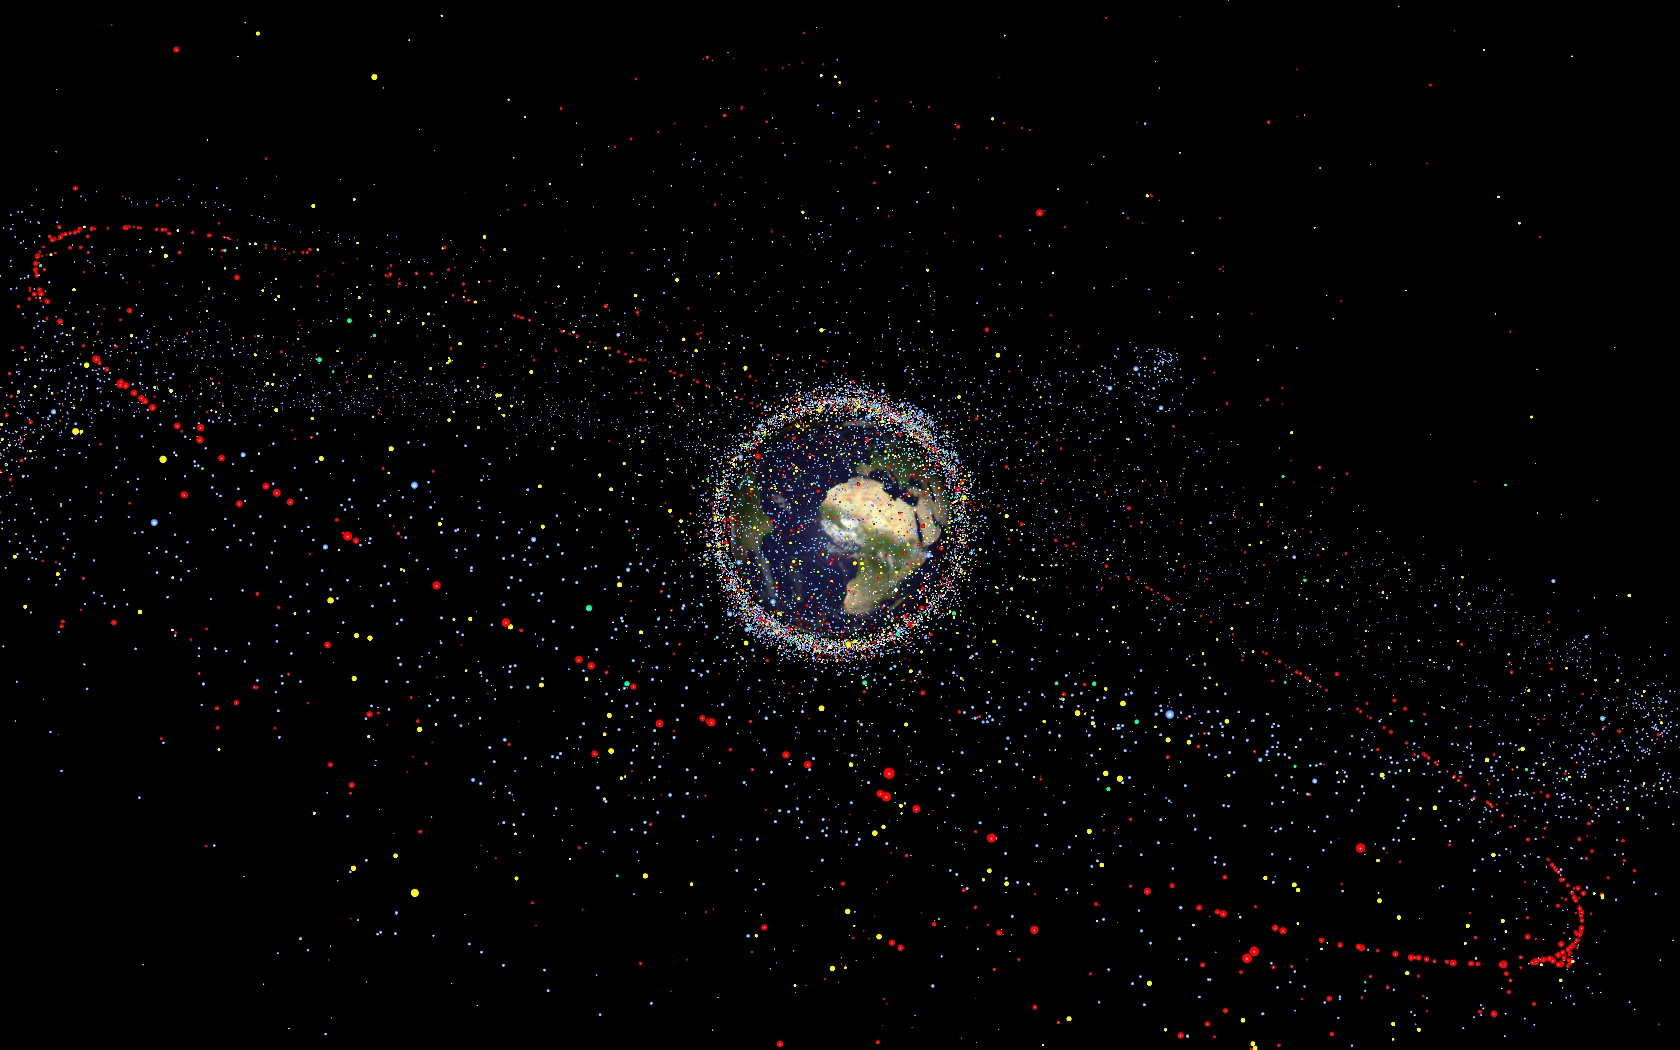 All human-made space objects result from the near-5000 launches since the start of the space age. About 65% of the catalogued objects, however, originate from break-ups in orbit – more than 240 explosions – as well as fewer than 10 known collisions. Scientists estimate the total number of space debris objects in orbit to be around 29 000 for sizes larger than 10 cm, 670 000 larger than 1 cm, and more than 170 million larger than 1 mm. Image credit: ESA